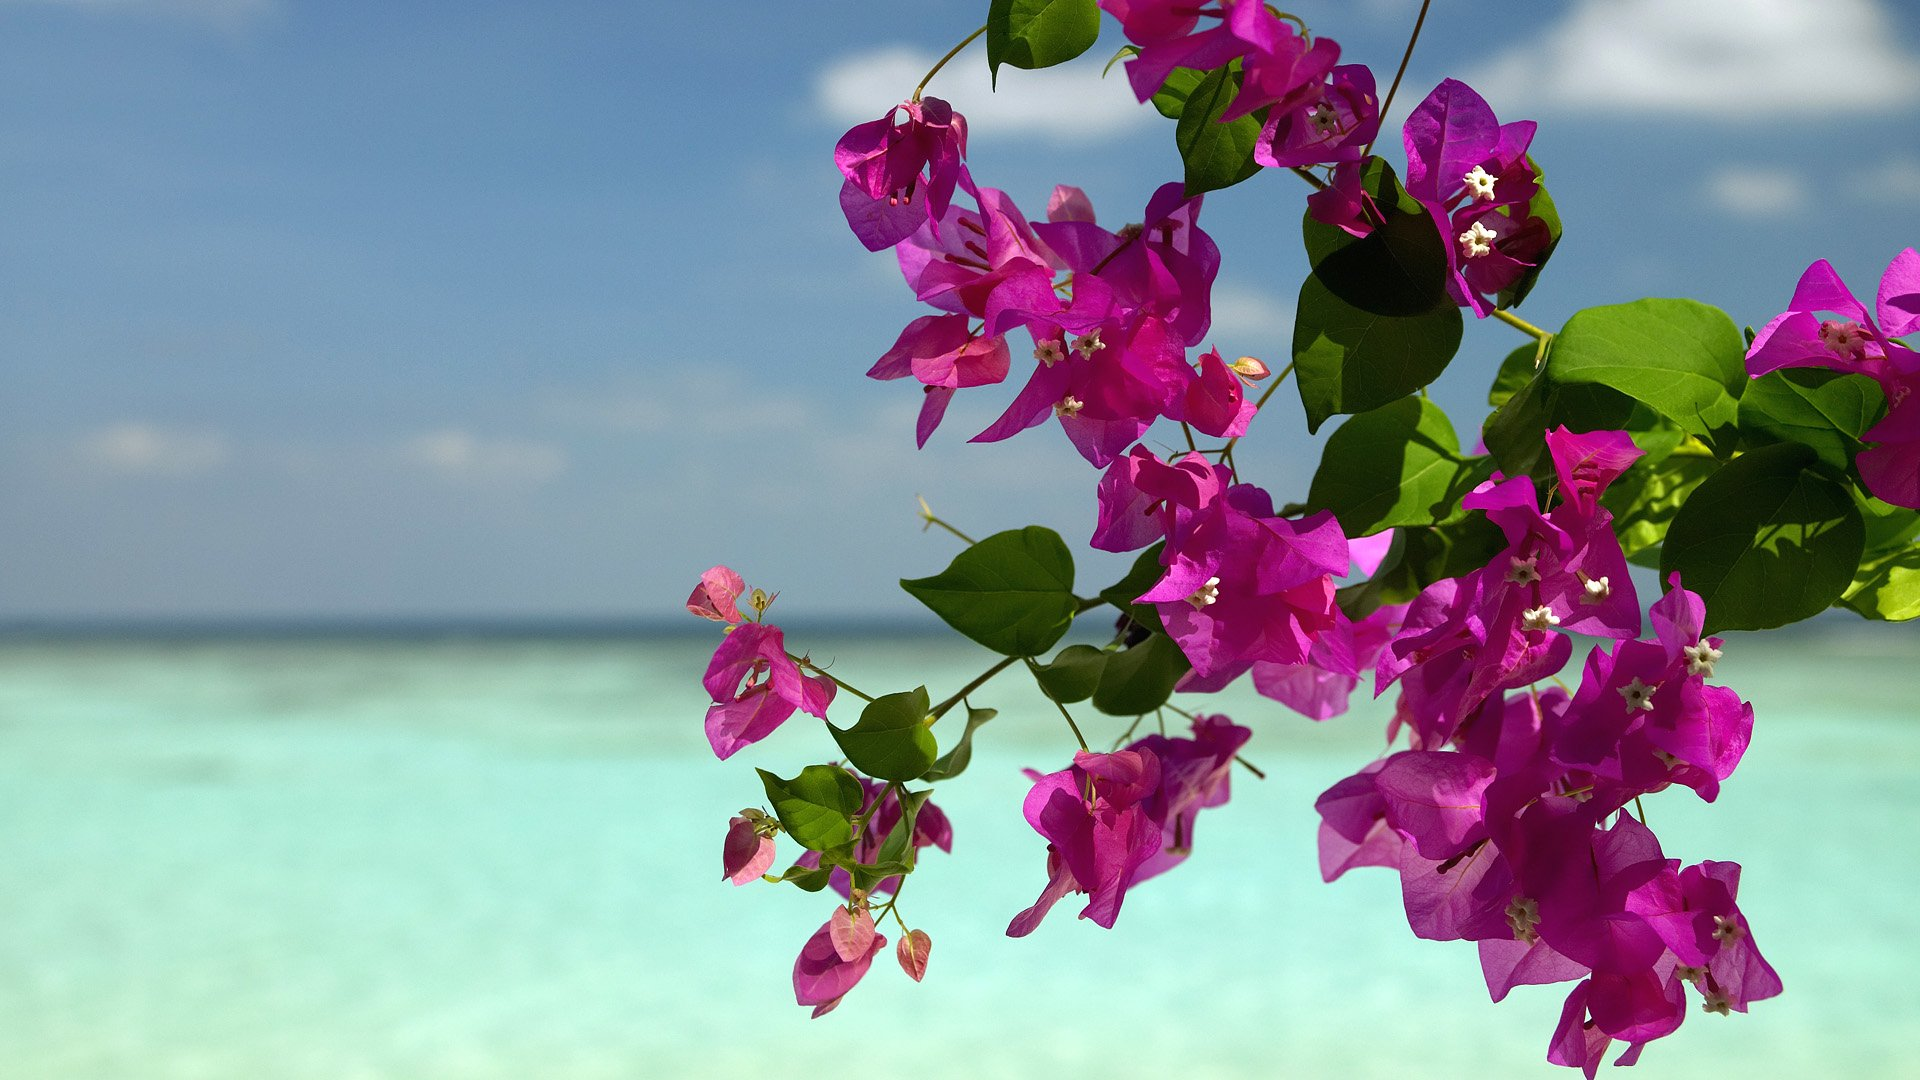 Bougainvillea Wallpaper Bougainvillea Hd Wallpaper Background Image 1920x1080 Id